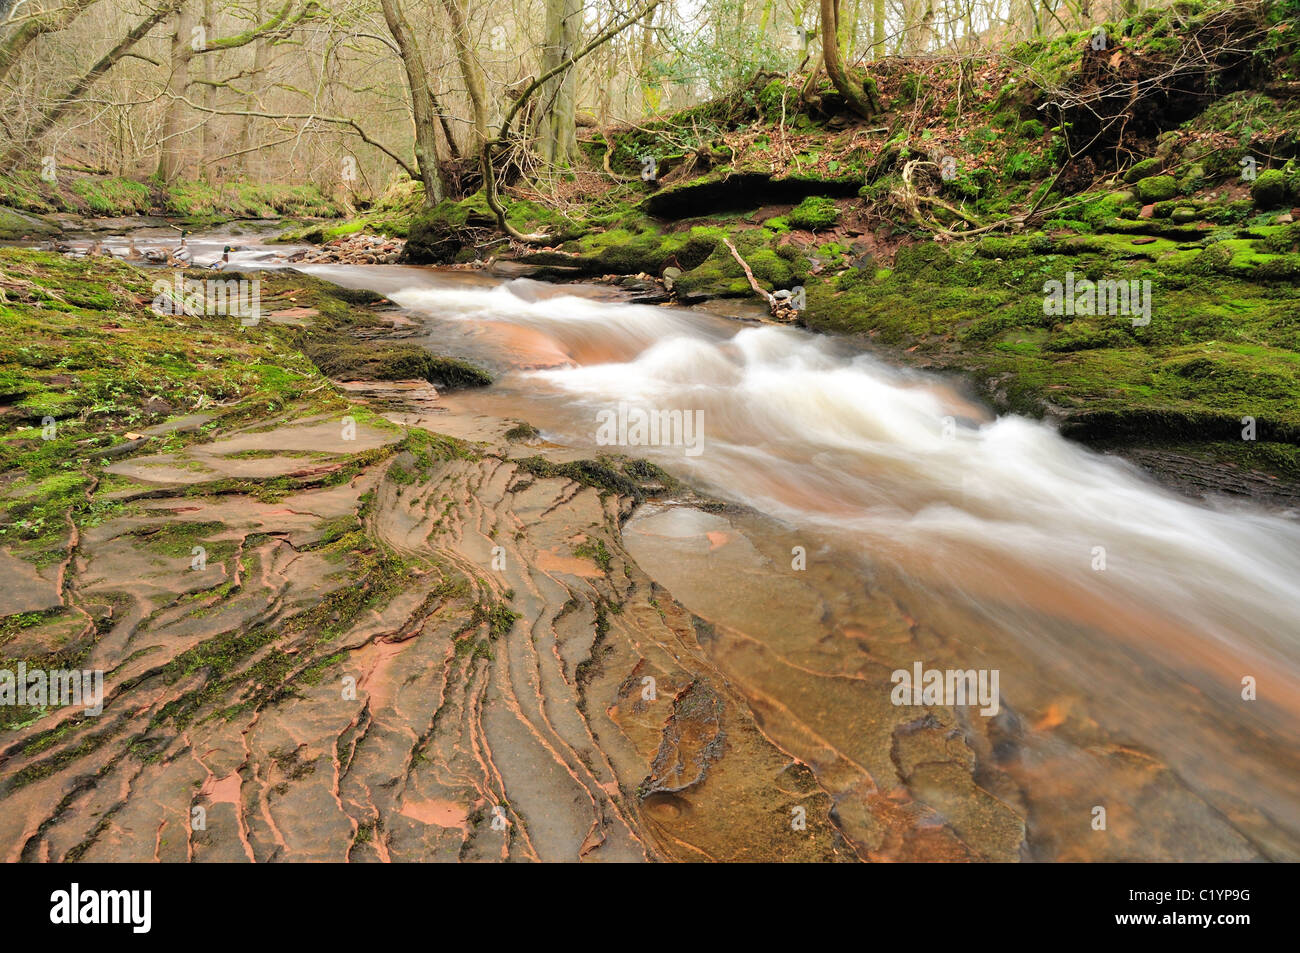 Old red sandstone and river in Gelt Woods near Brampton in Cumbria, England - Stock Image